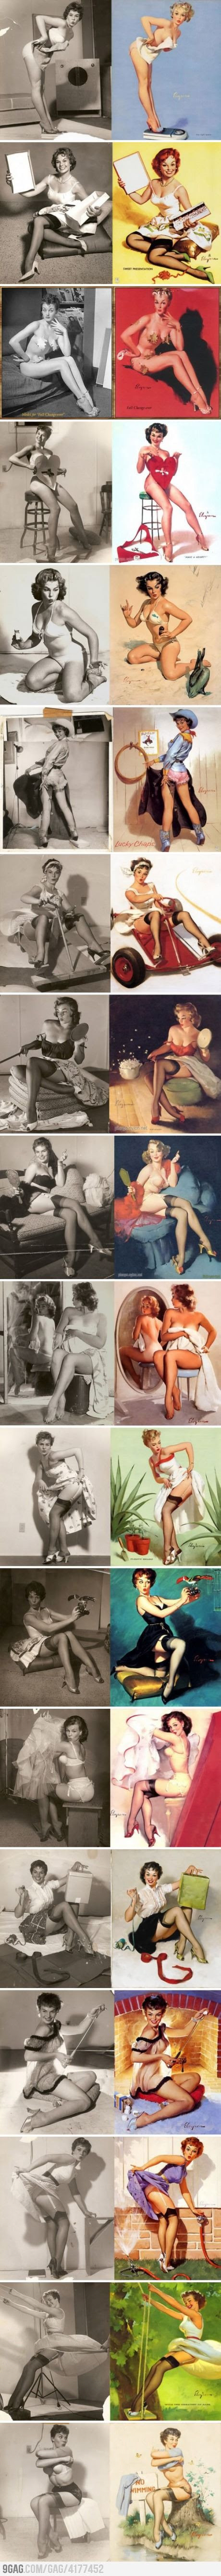 Vintage Real girls vs. Pin-up girls